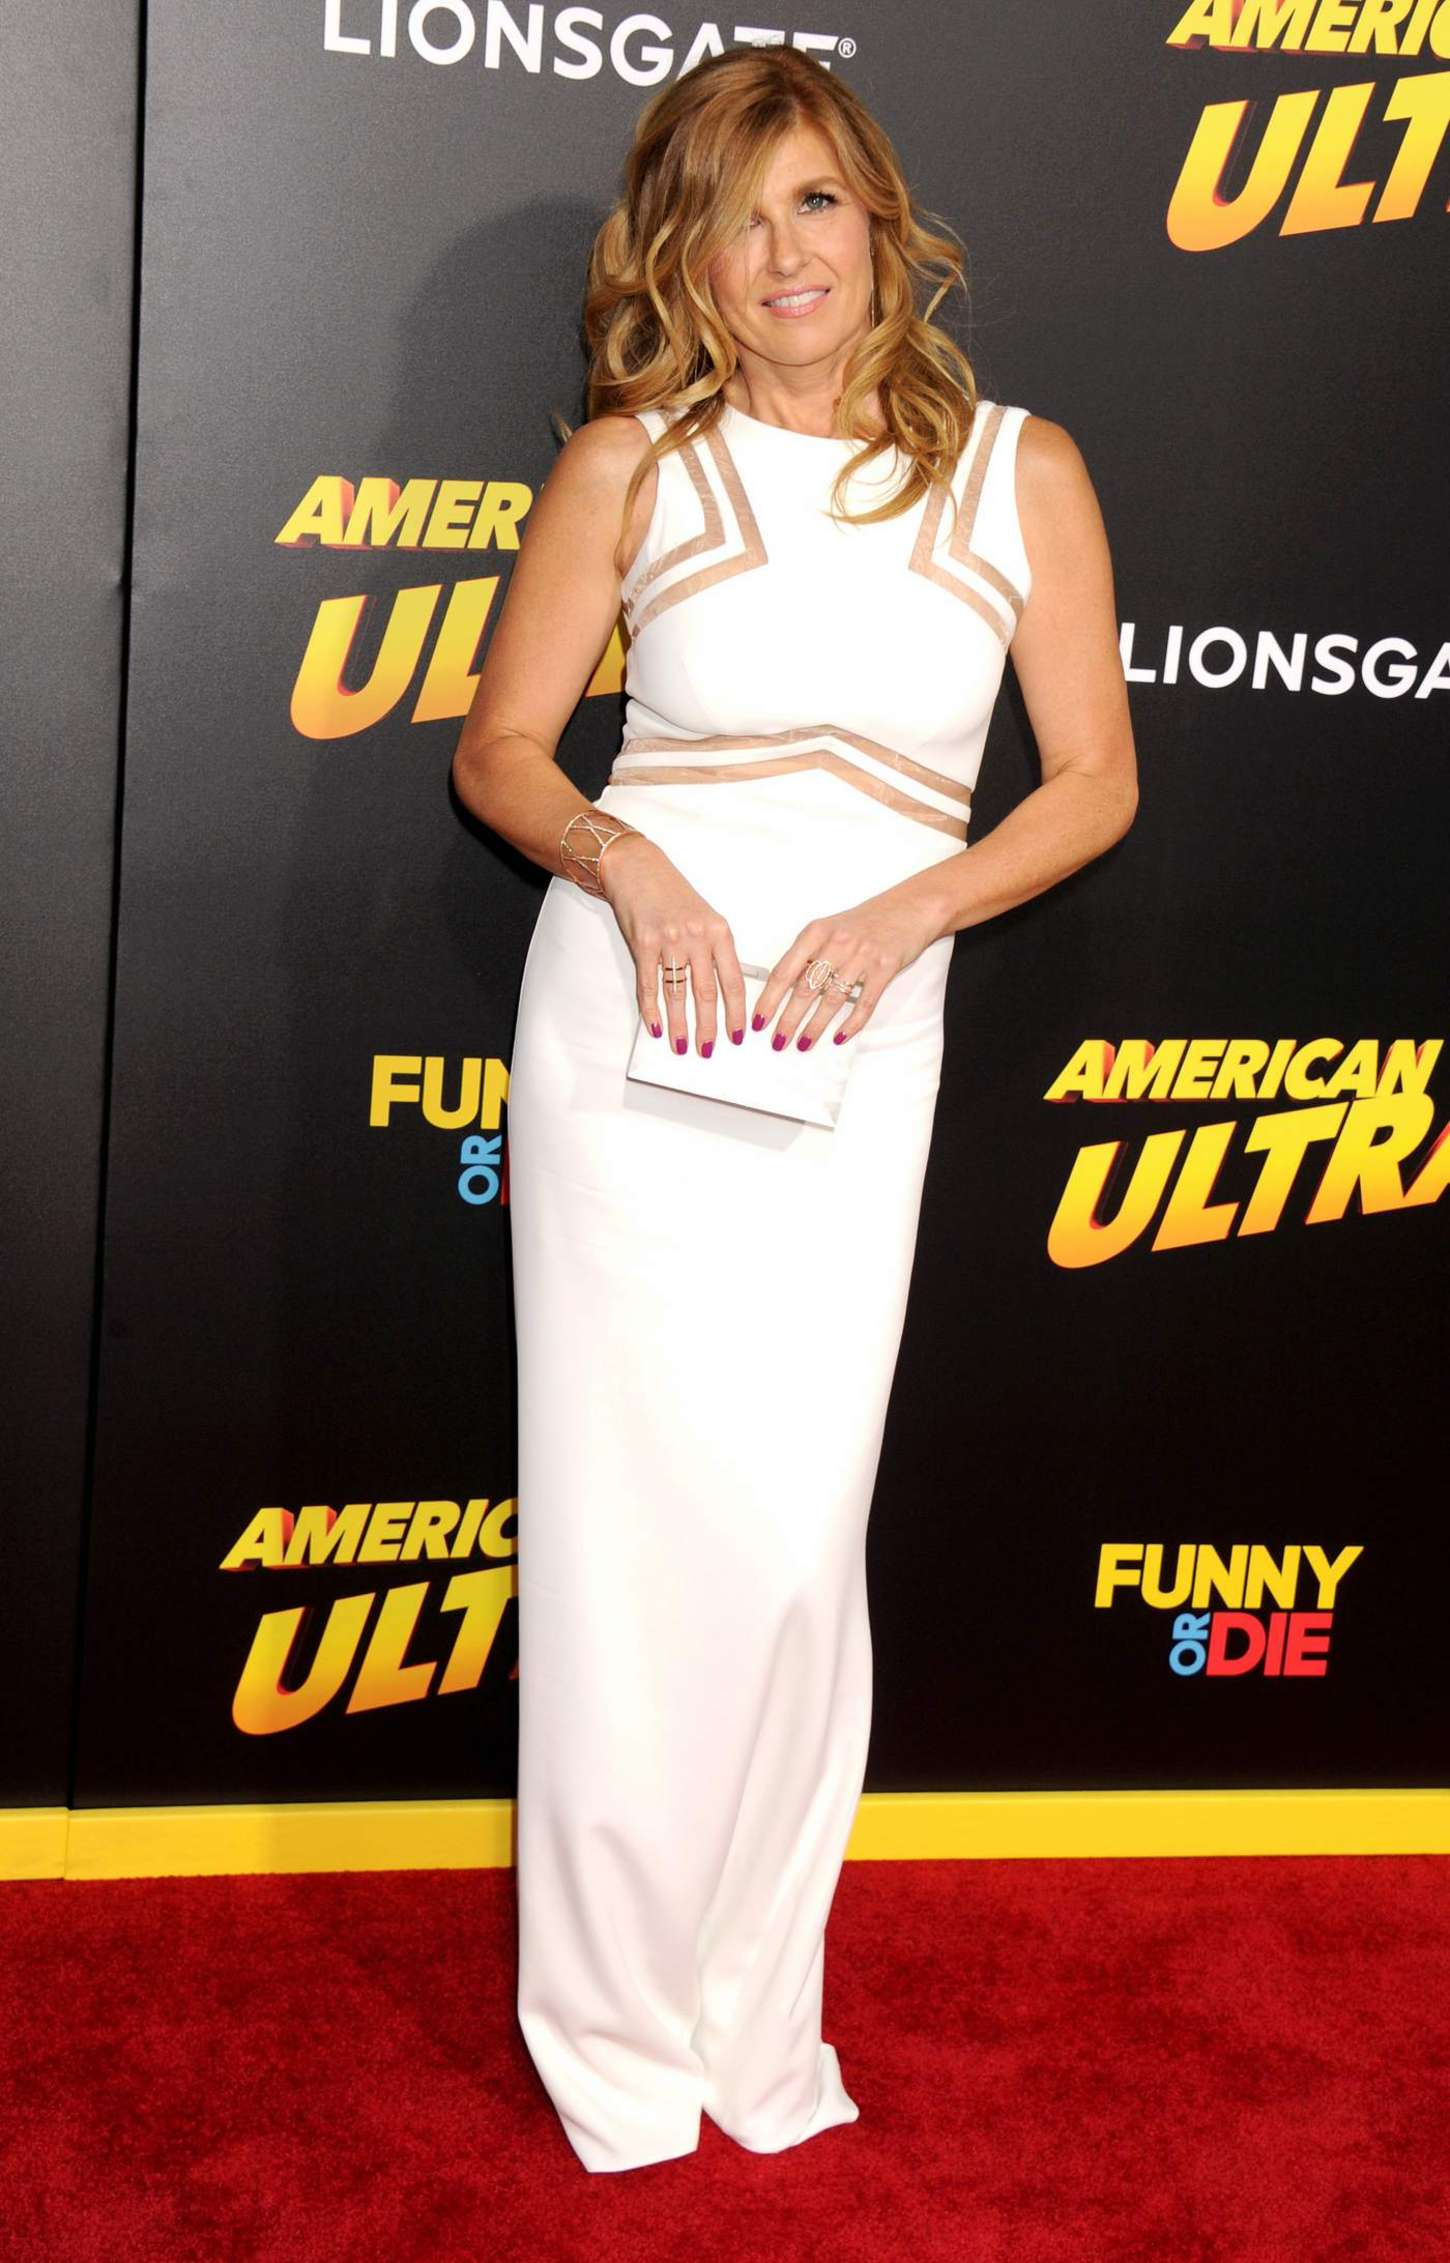 Connie Britton American Ultra Premiere in Los Angeles